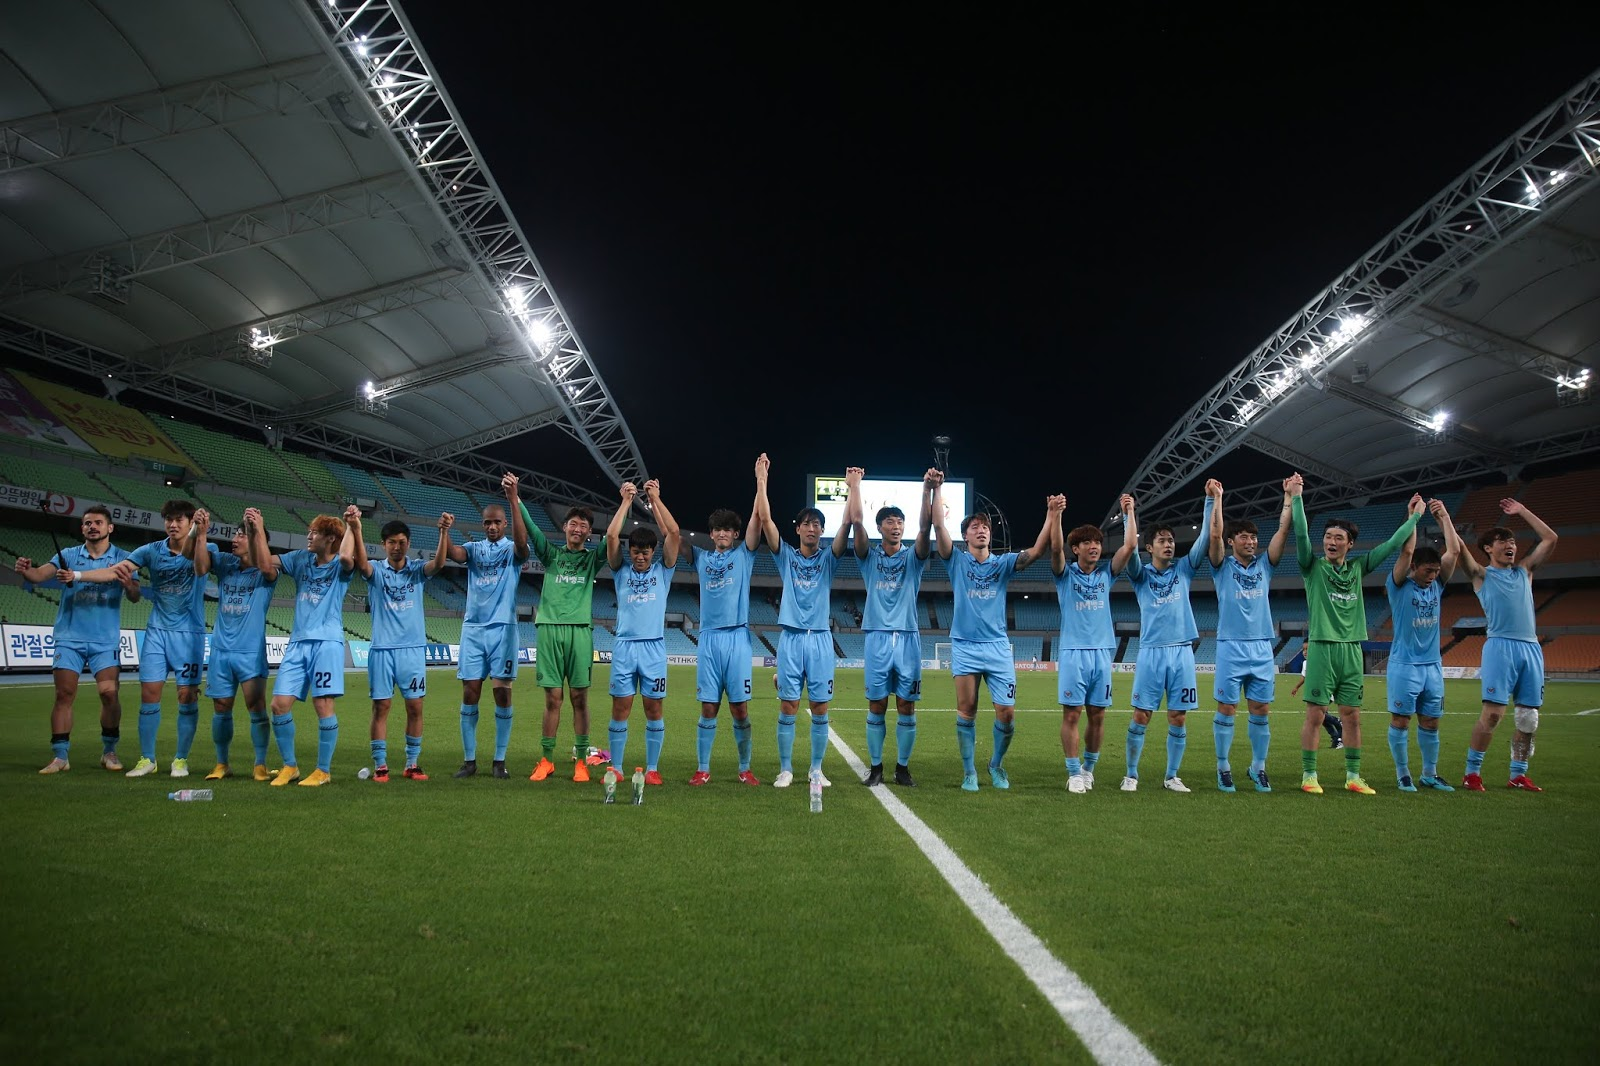 Preview: Daegu FC vs Sangju Sangmu K League 1 Daegu Stadium